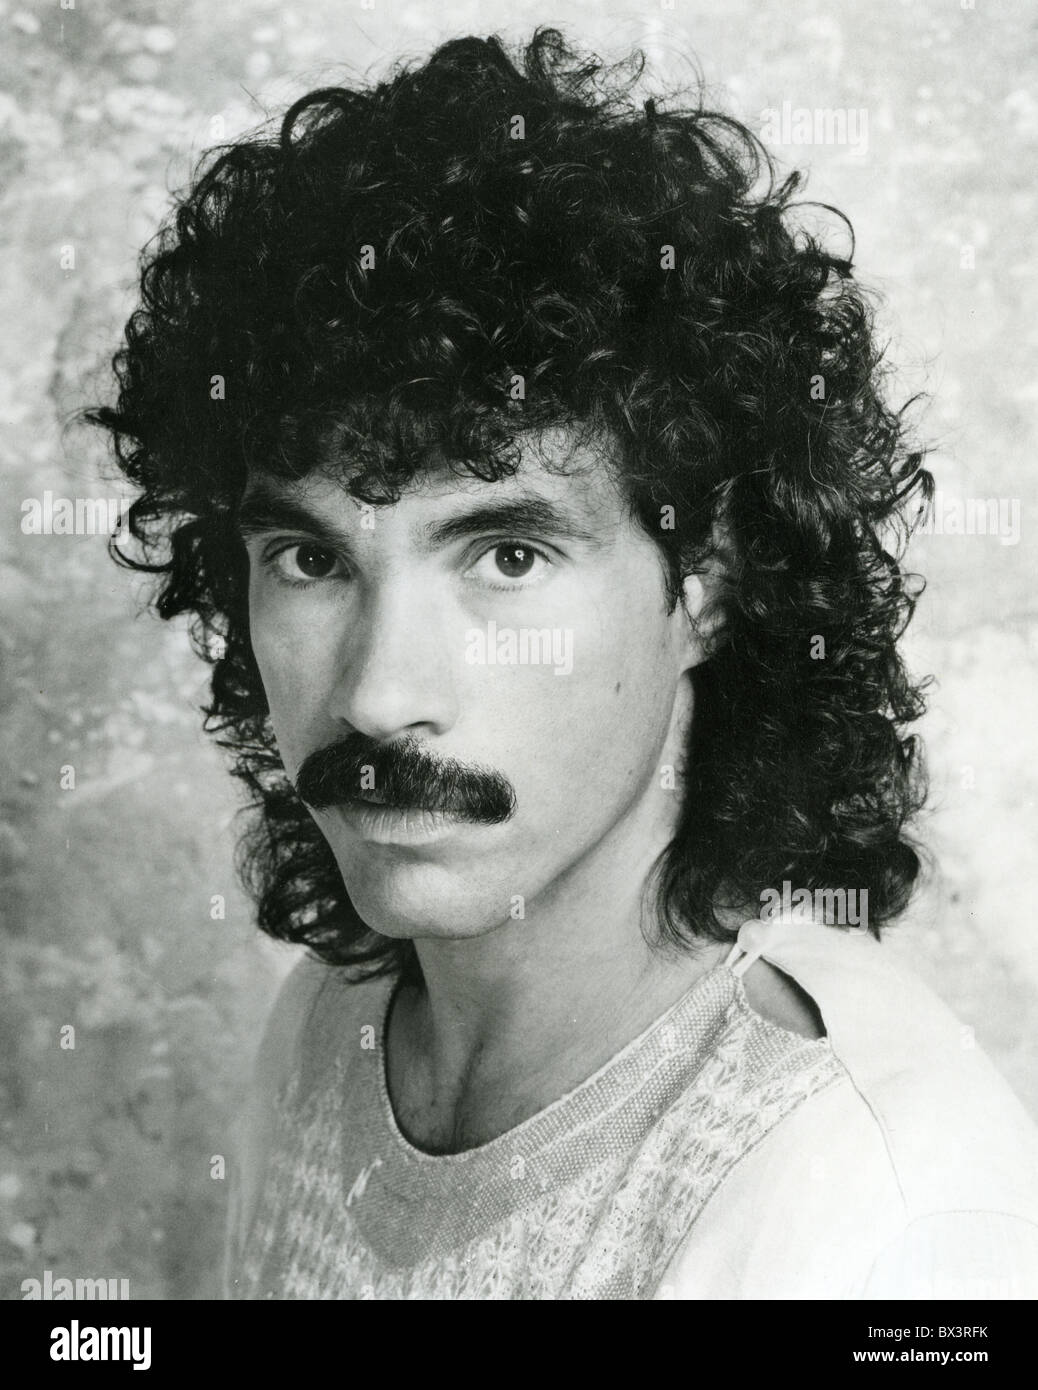 JOHN OATES Promotional photo of US singer doubled with Daryl Hall here about 1980 - Stock Image